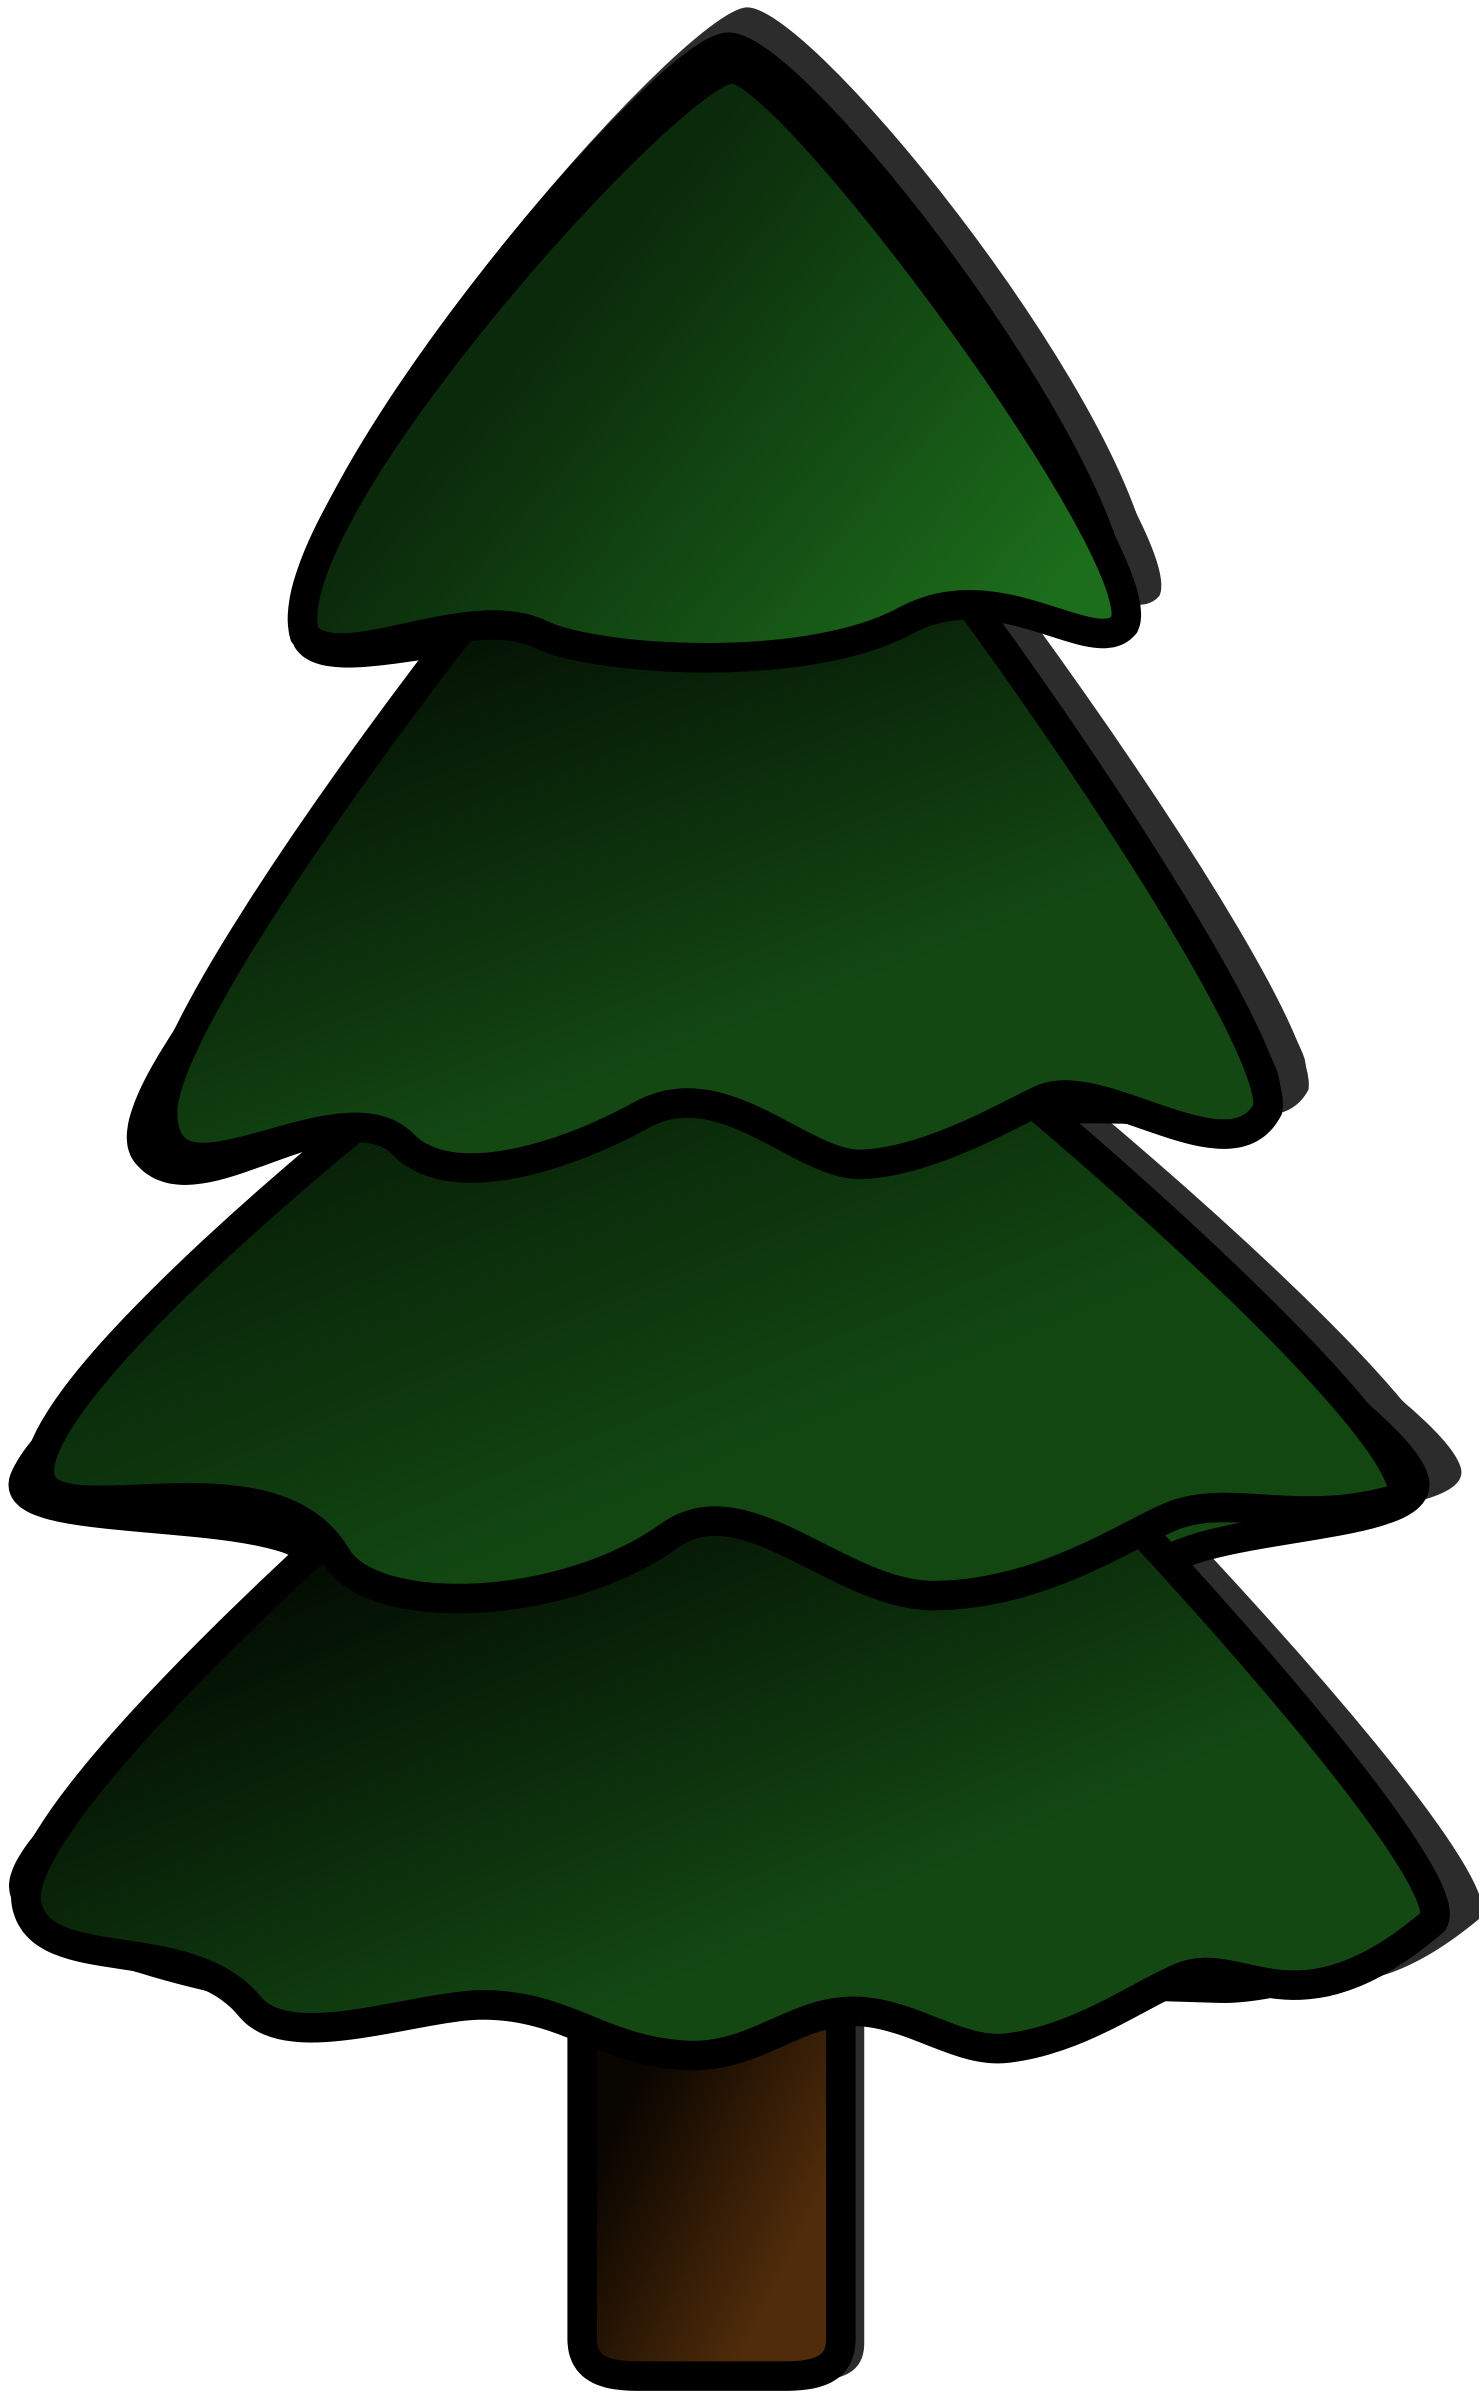 Clipart sapin pine tree tanne clipart best - Sapin clipart ...